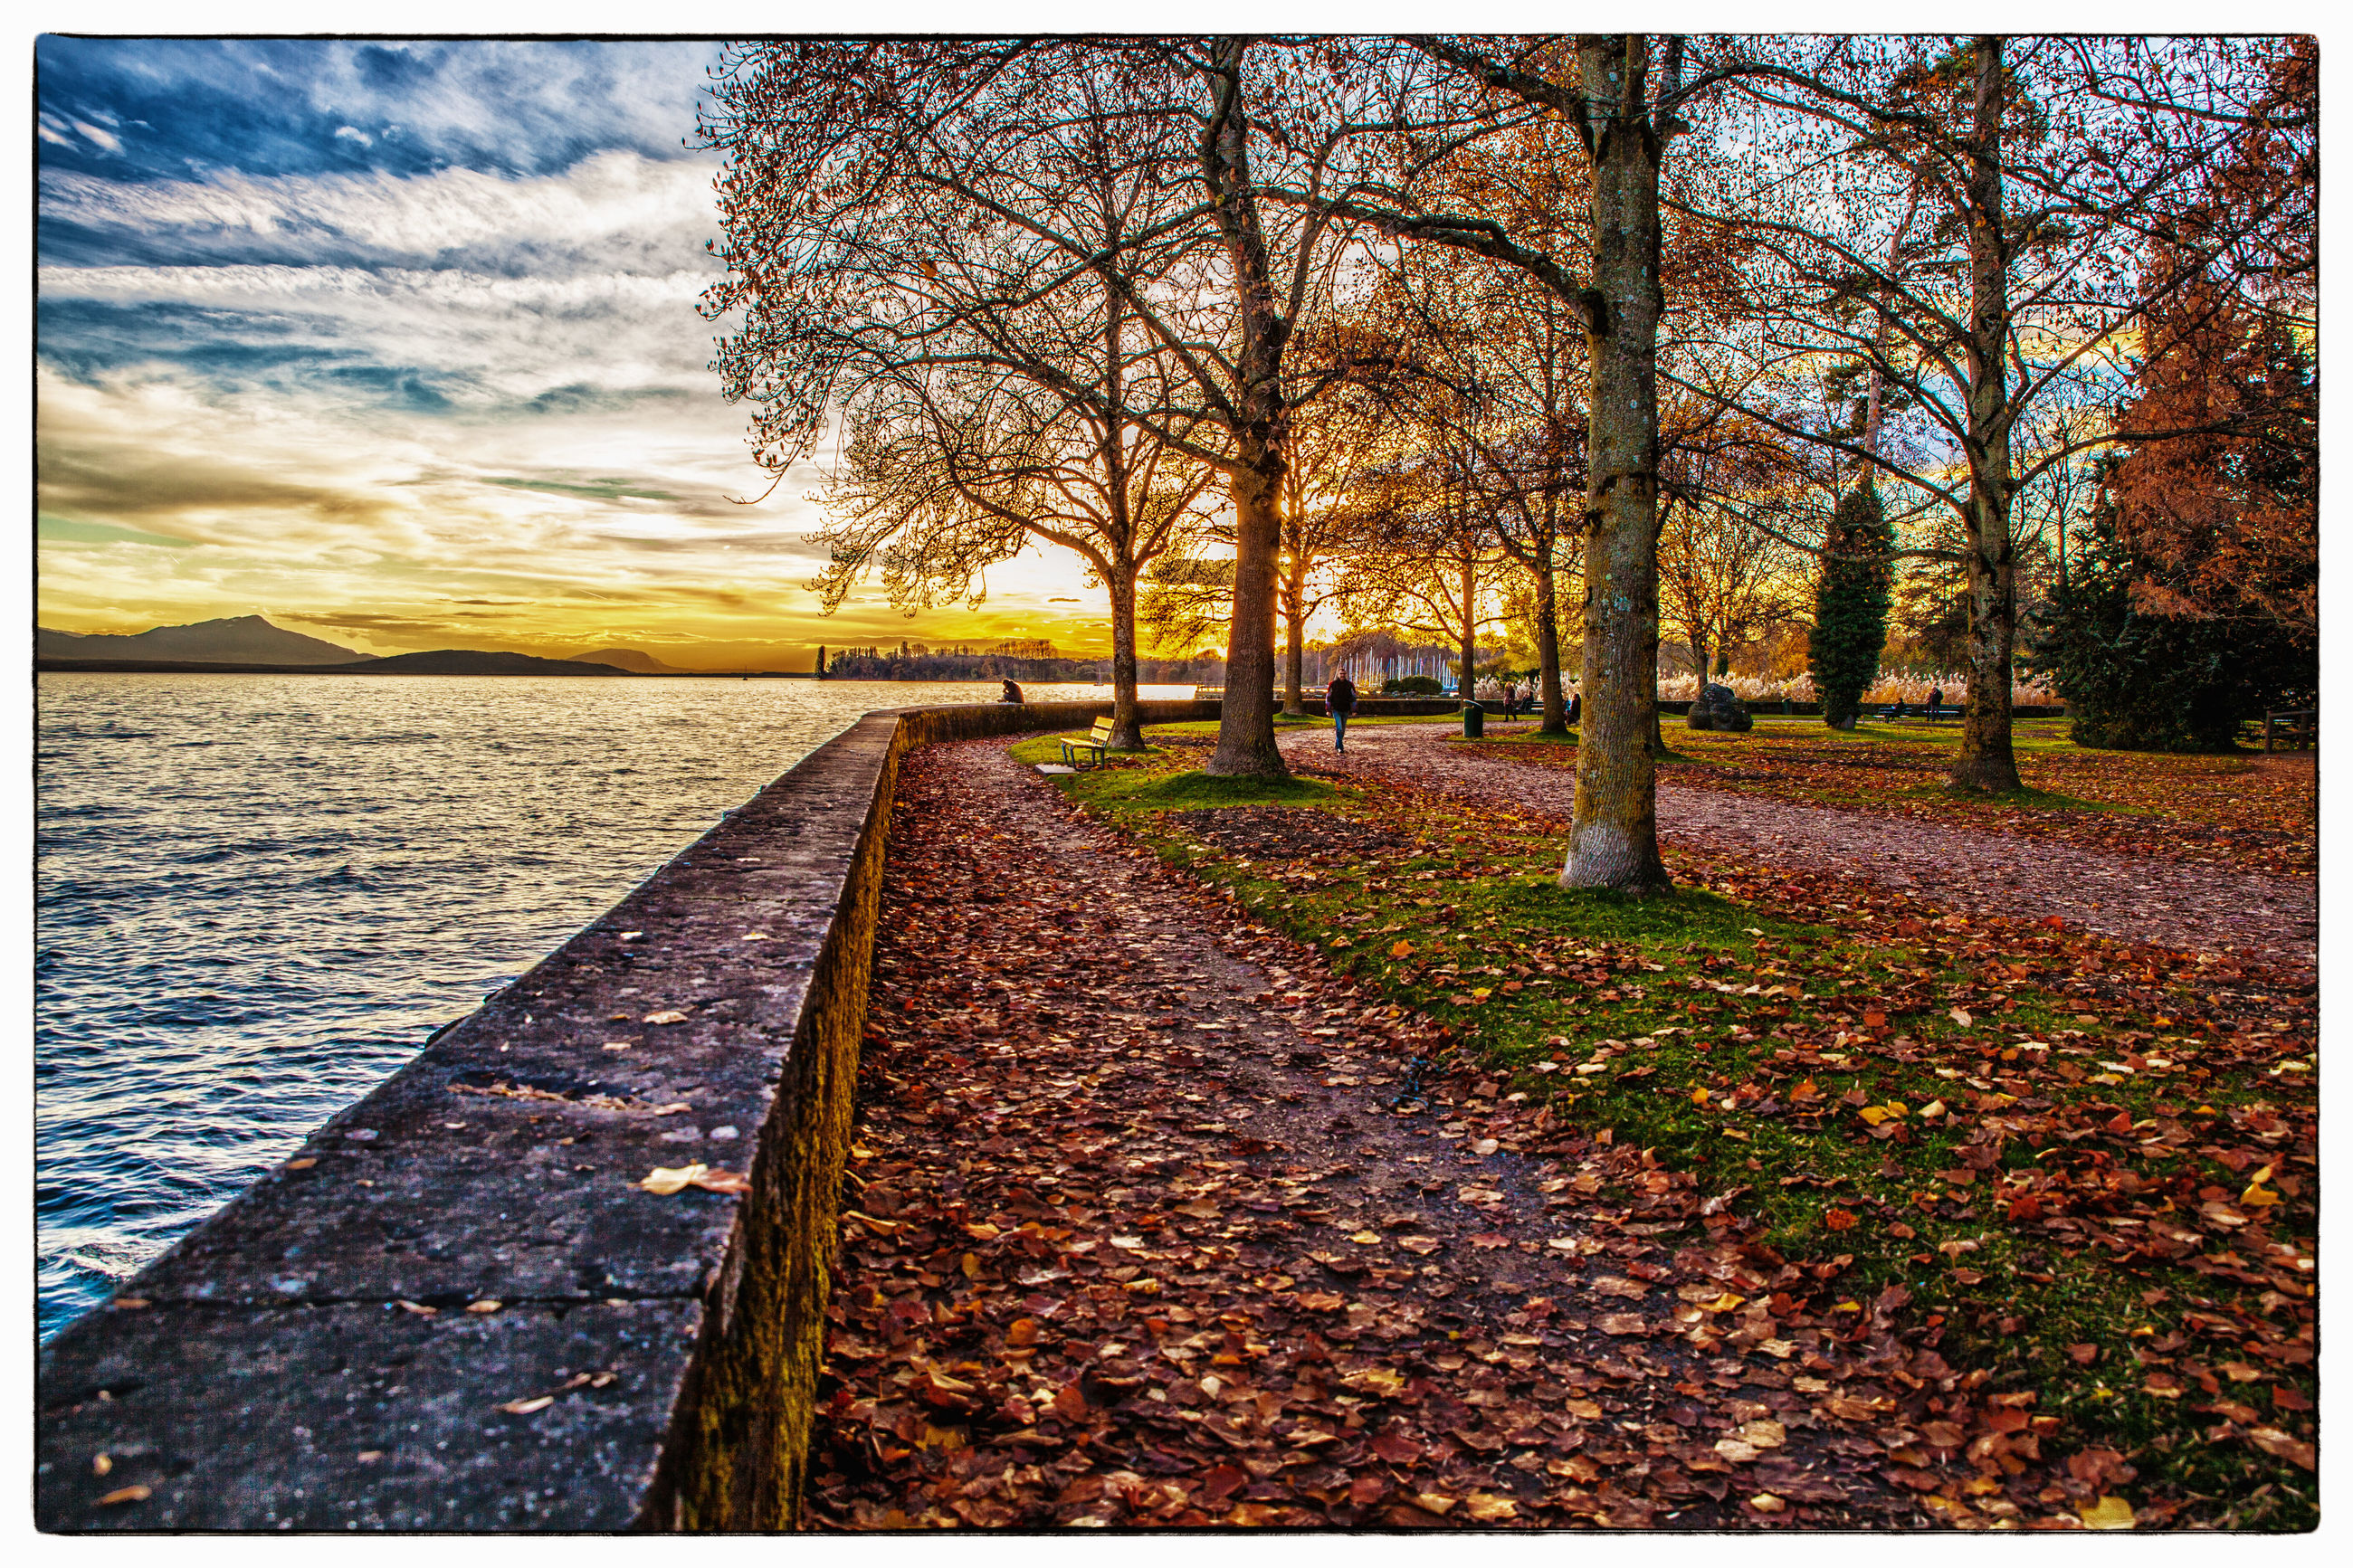 sky, sunset, tree, outdoors, nature, no people, growth, beauty in nature, day, scenics